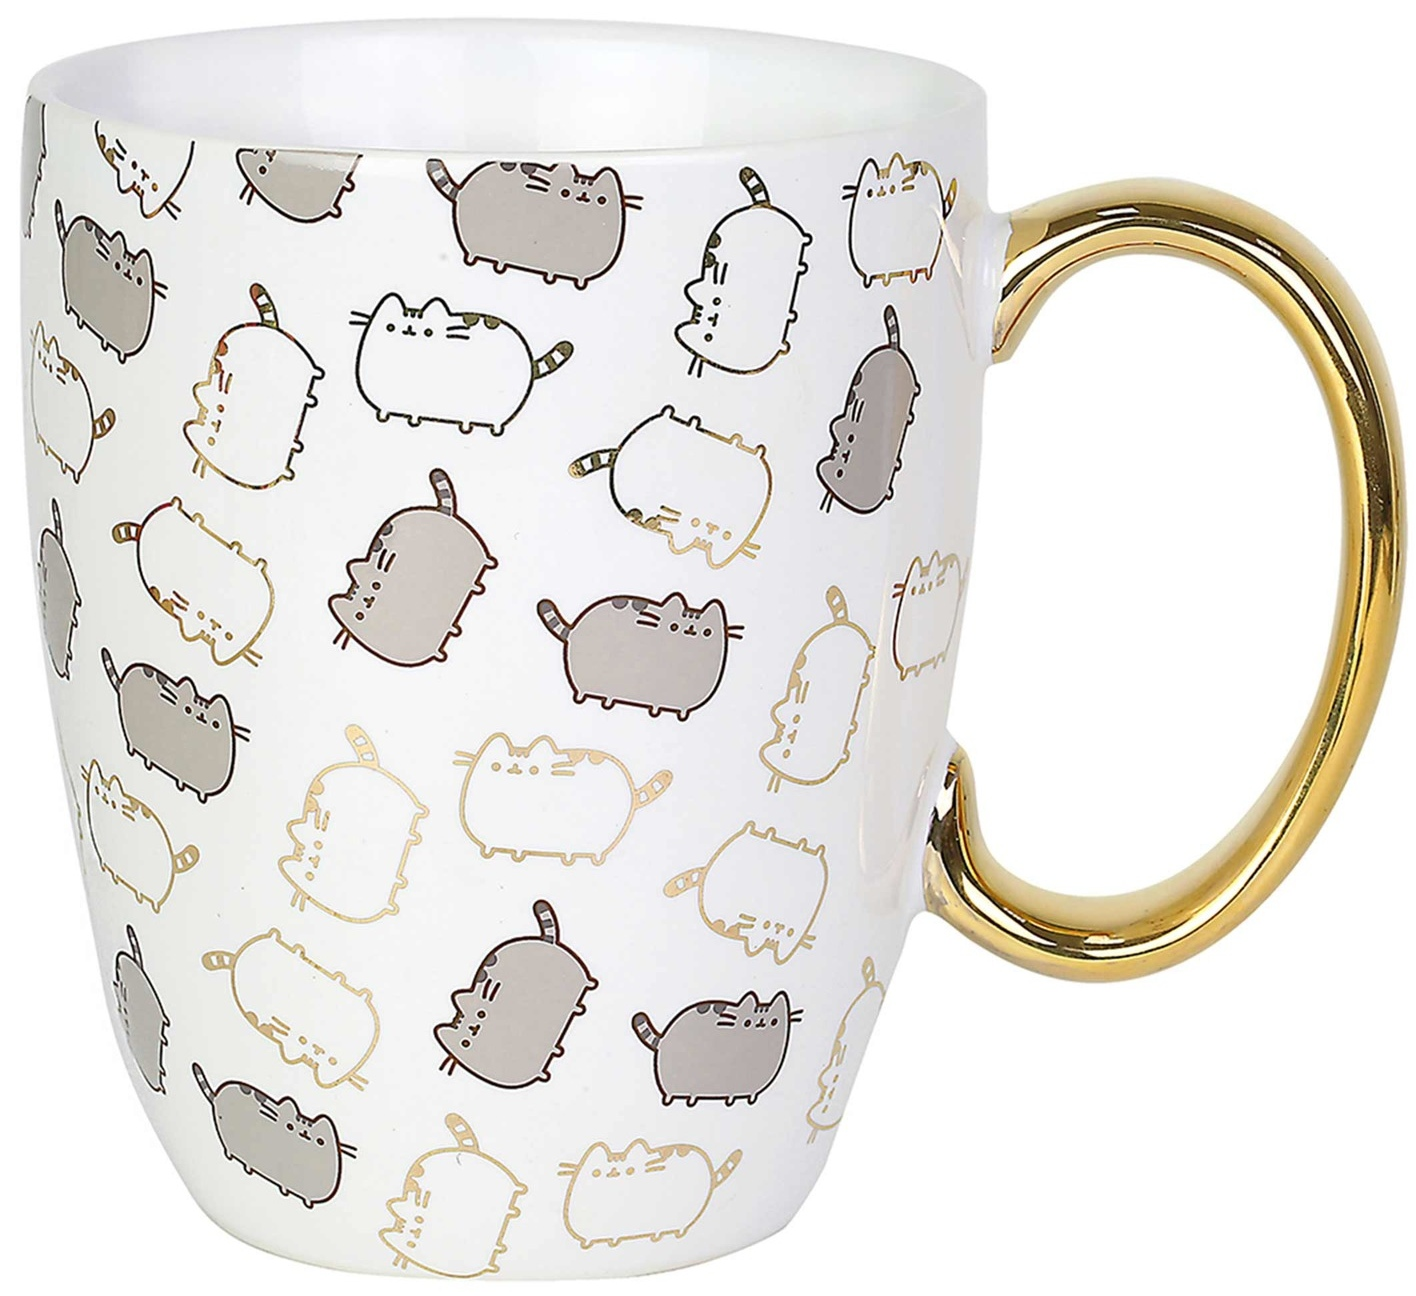 Pusheen by Our Name Is Mud 6004622 Gold Pattern Mug